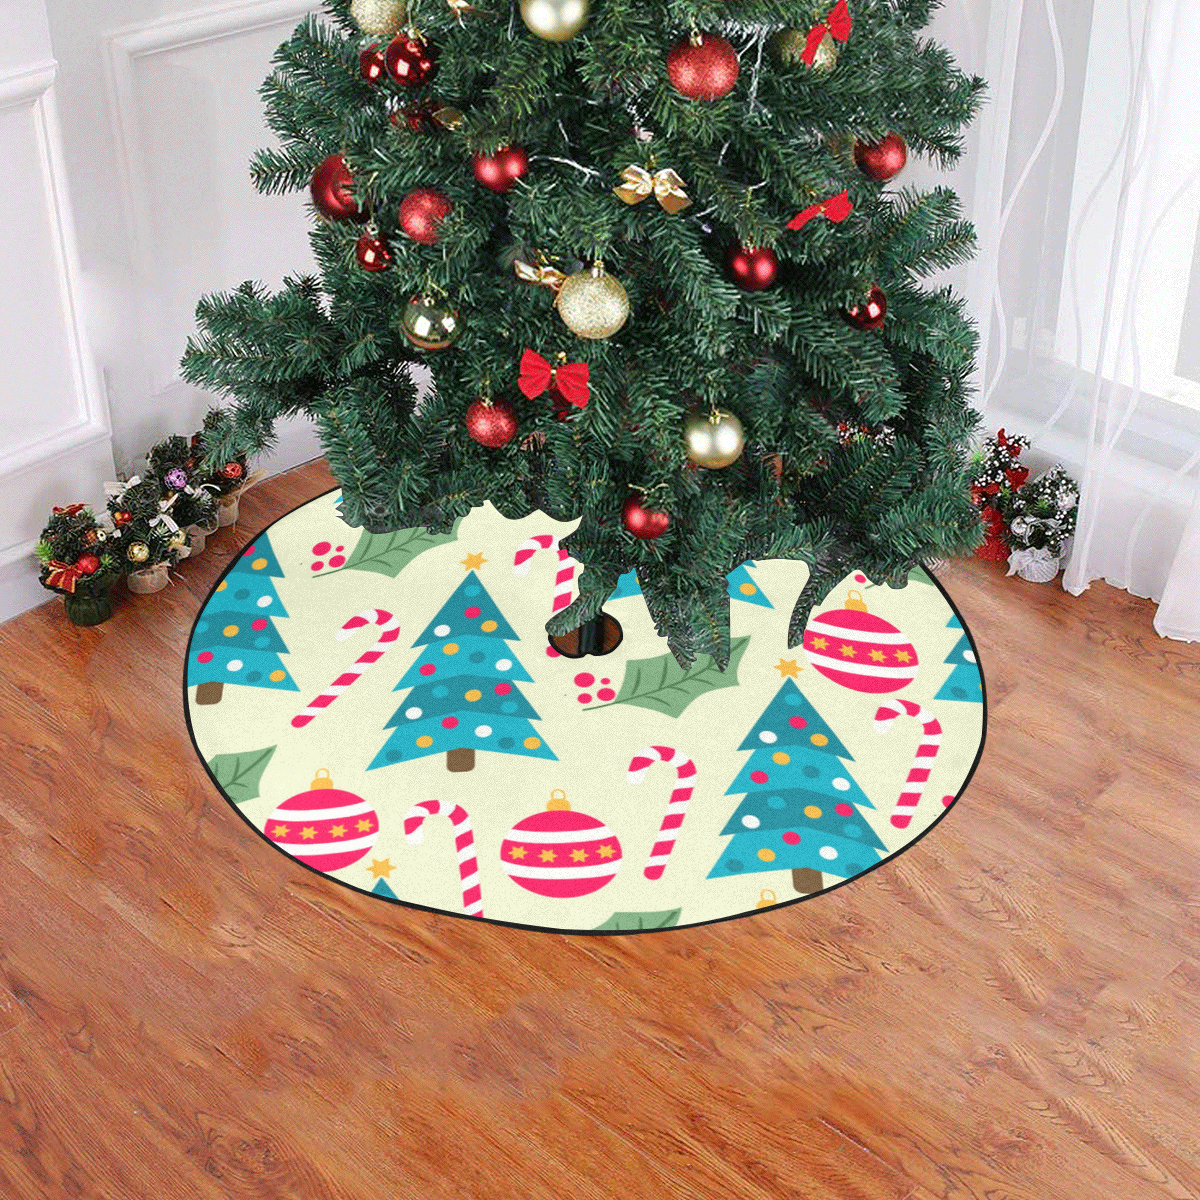 """Trees Mistletoe Candy Canes and Ornaments Christmas Tree Skirt 47"""" x 47"""""""